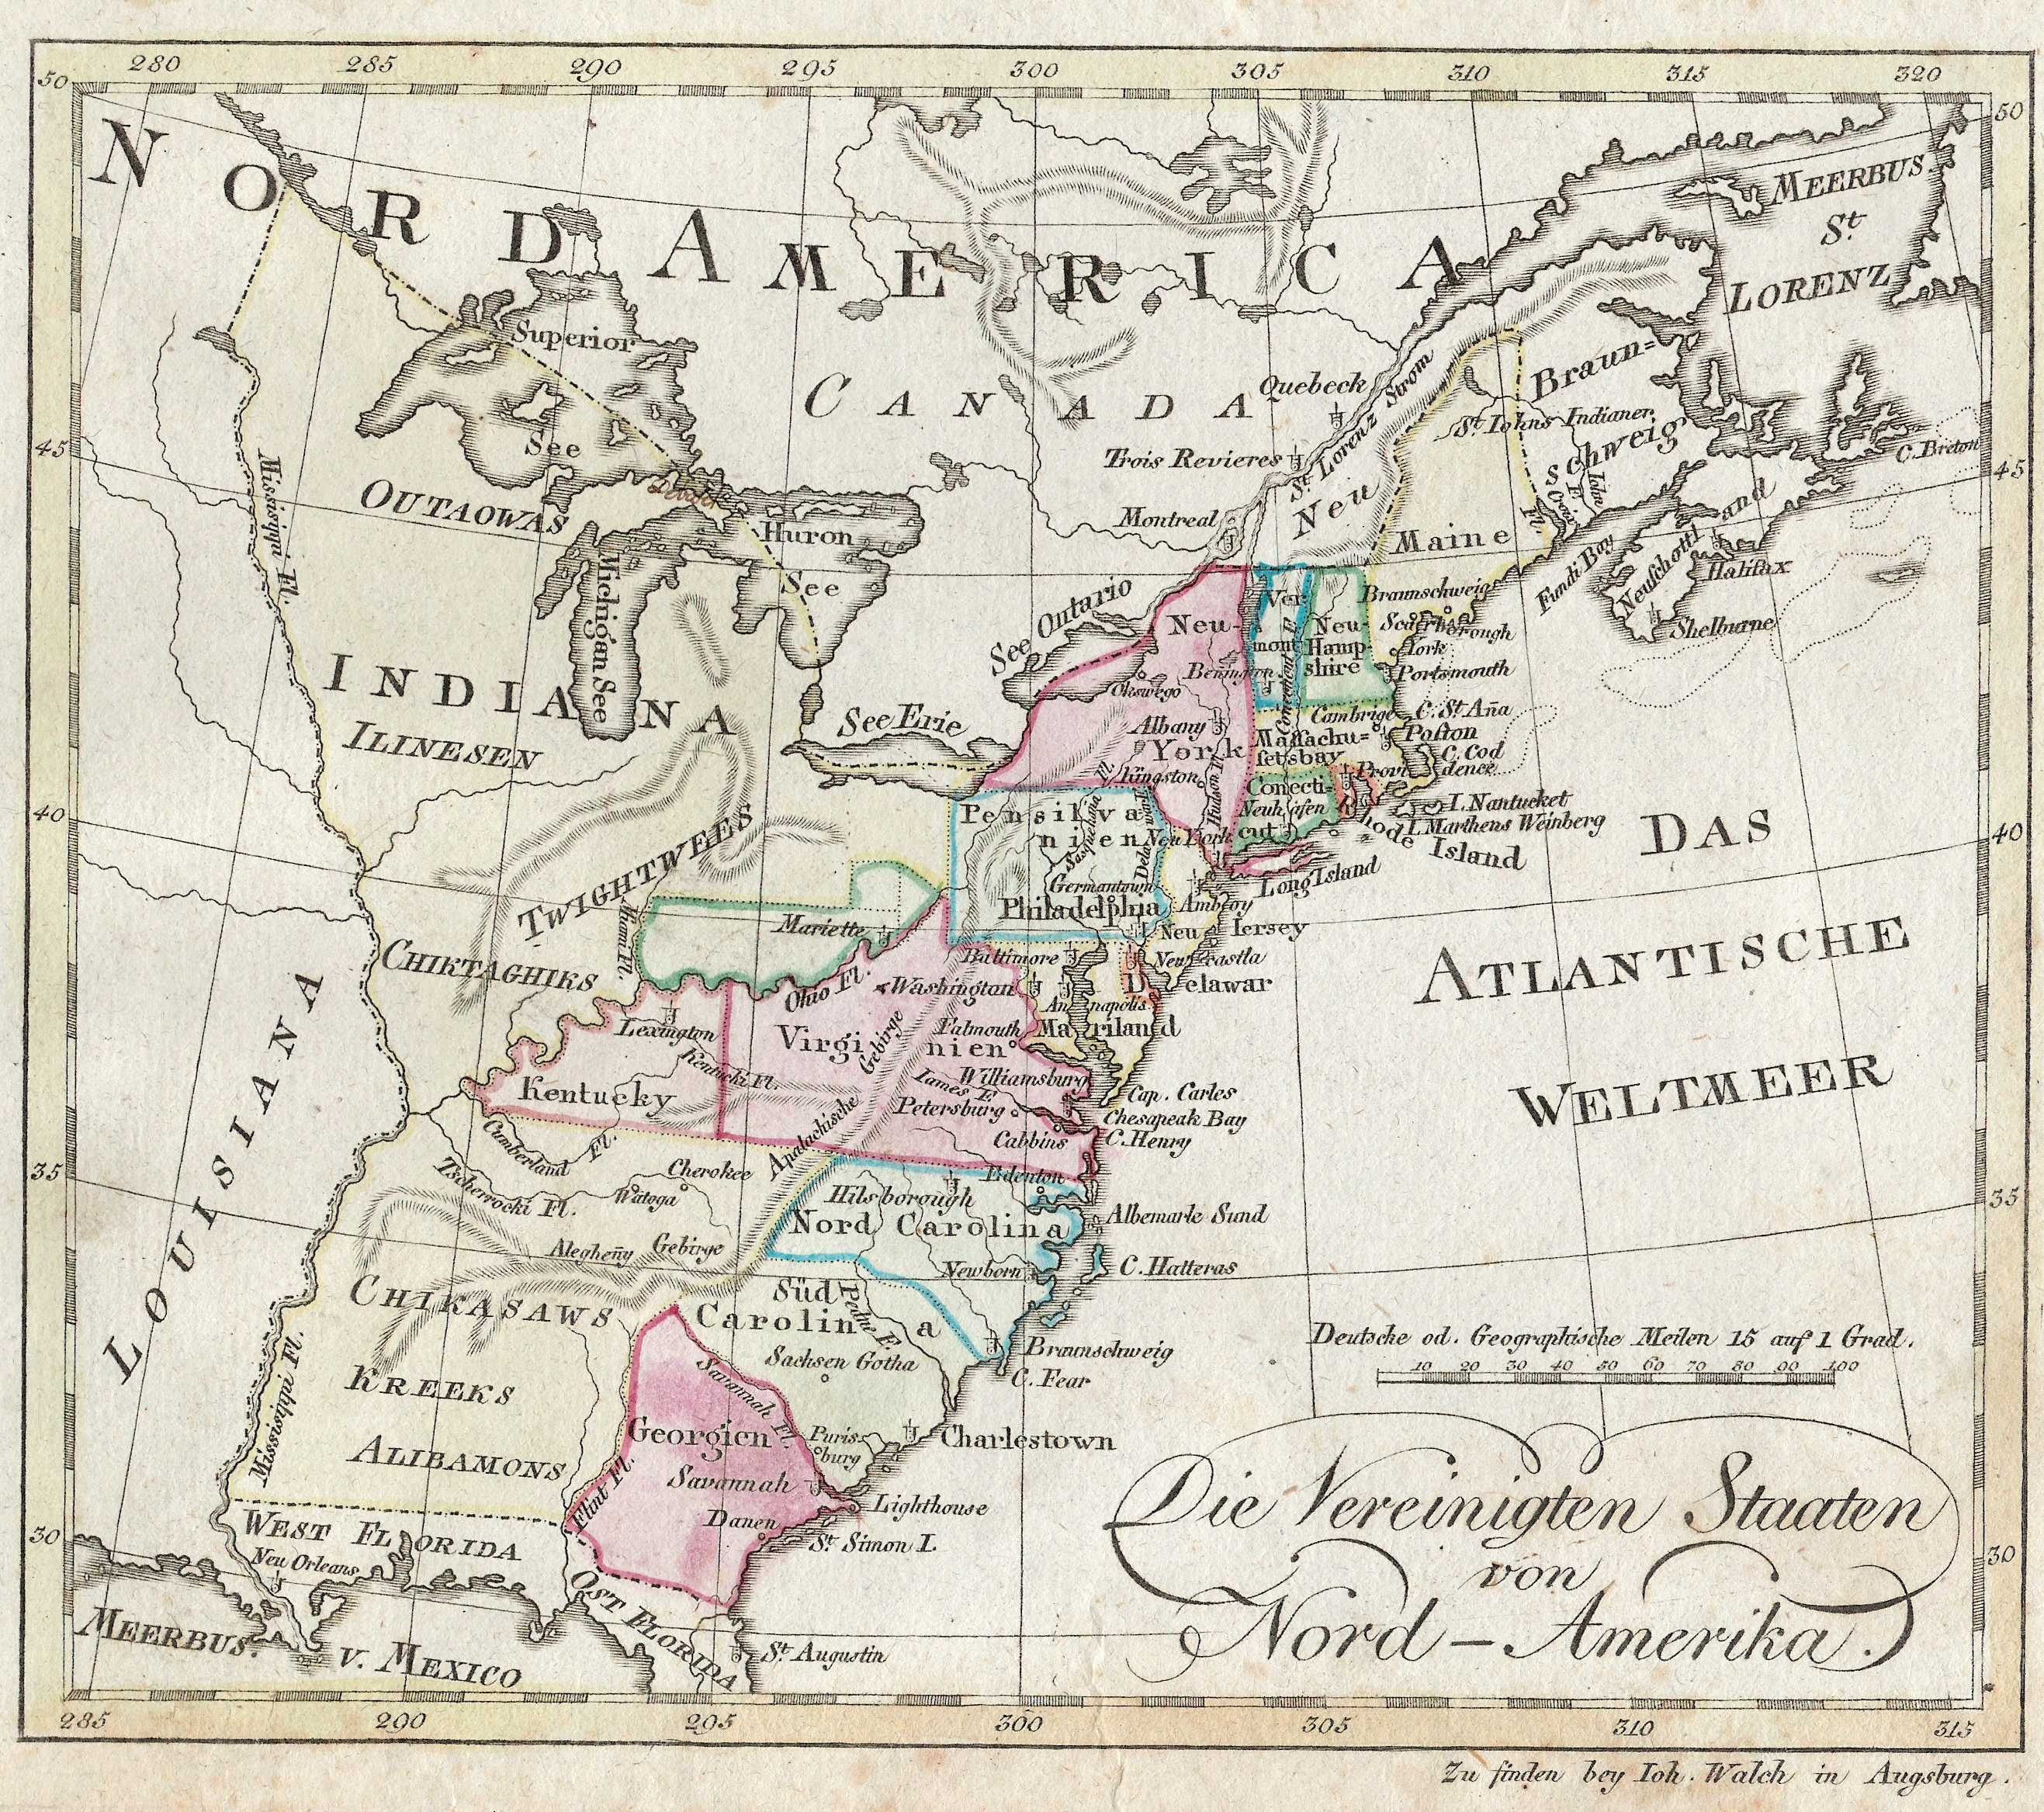 1800s Pennsylvania Maps